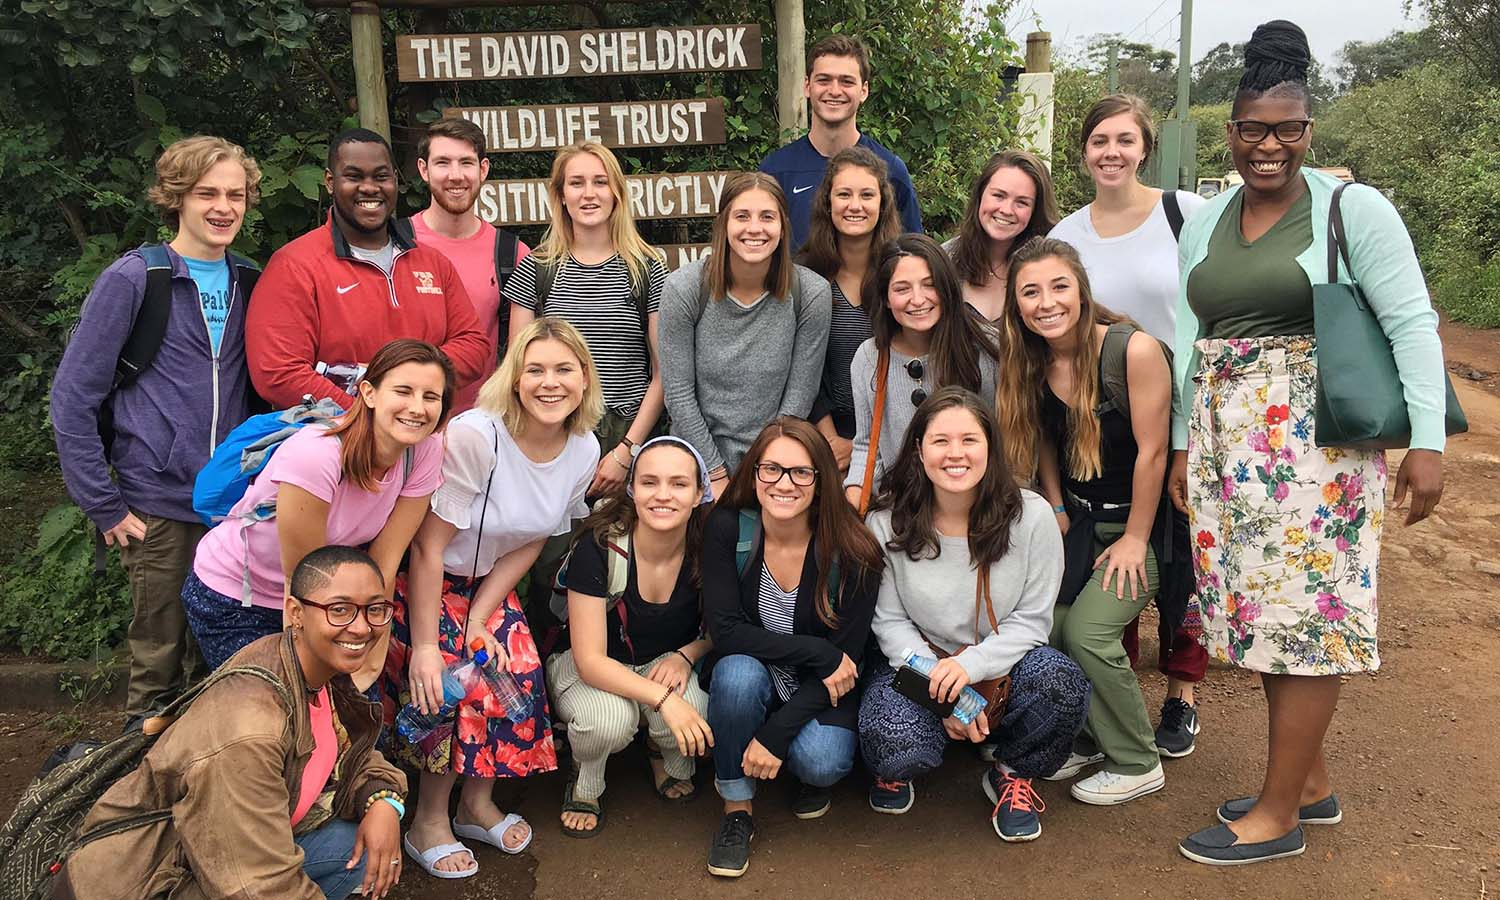 "In this special edition of This Week In Photos, we're showcasing HWS students, faculty and alums on trips all over the world this summer featuring ""The Economics of the Between"" in Kenya, ""Outdoor Education: Theoretical Issues in Outdoor Pursuits"" in Wales, and  ""An Italian Road Less Traveled: Calabria and Sicily"" in Italy. Here, students gather for a photo with Professor Keoka Grayson in front of the David Sheldrick Wildlife Trust in Nairobi, Kenya."